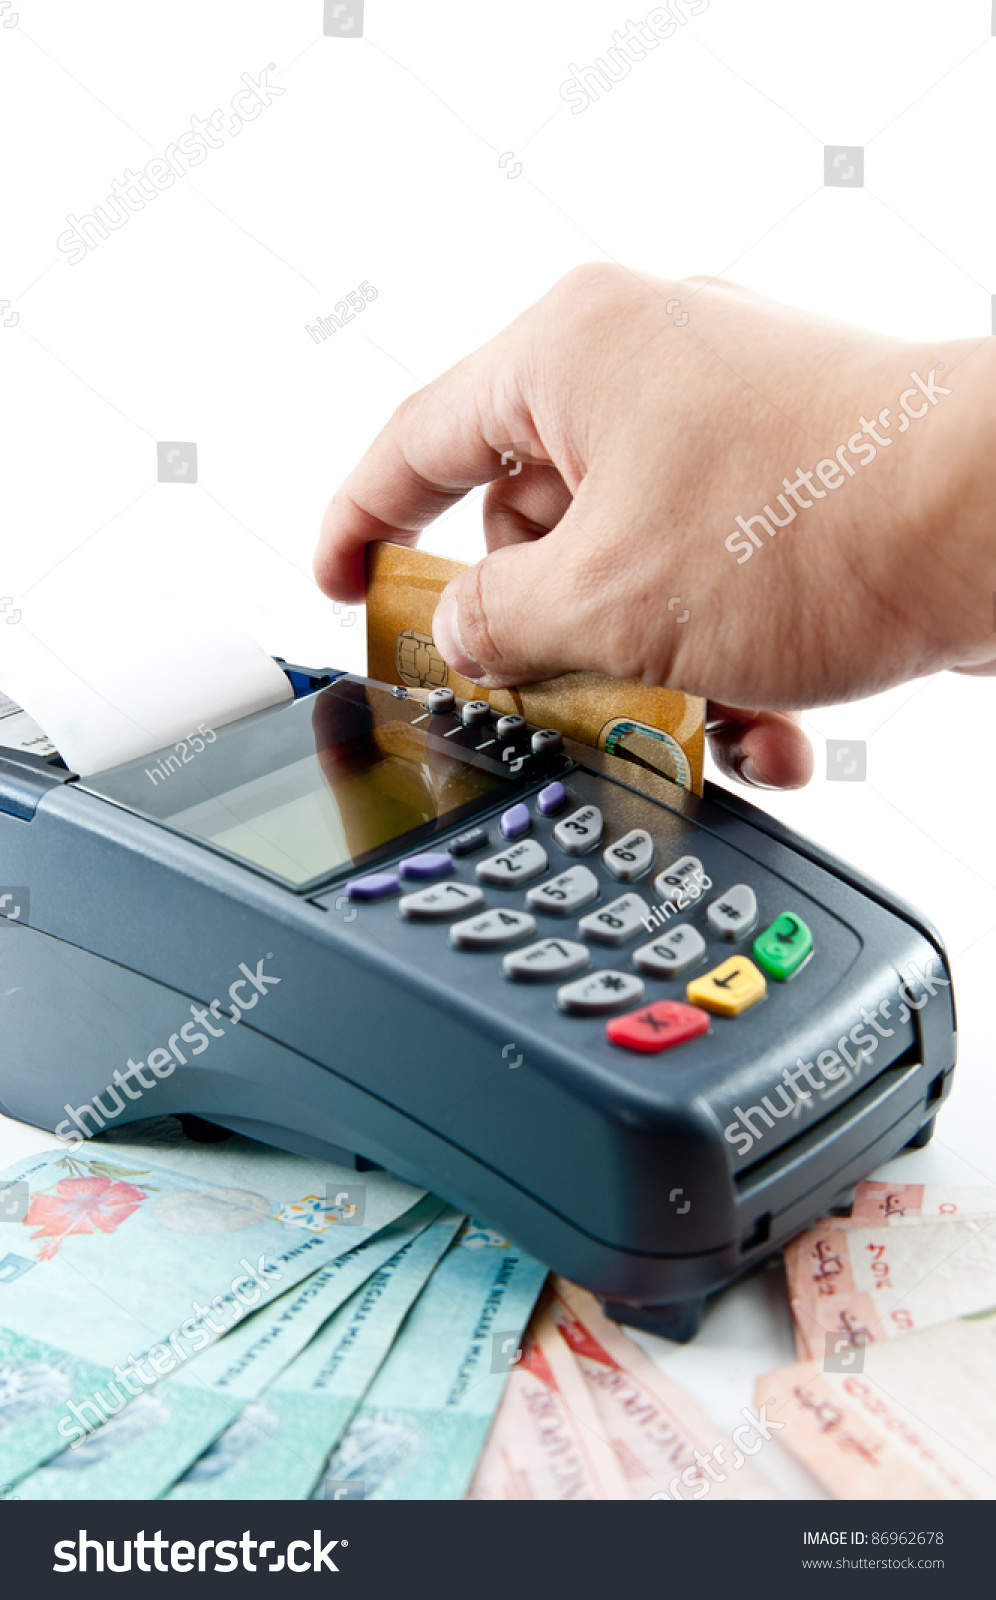 calculating credit card payment